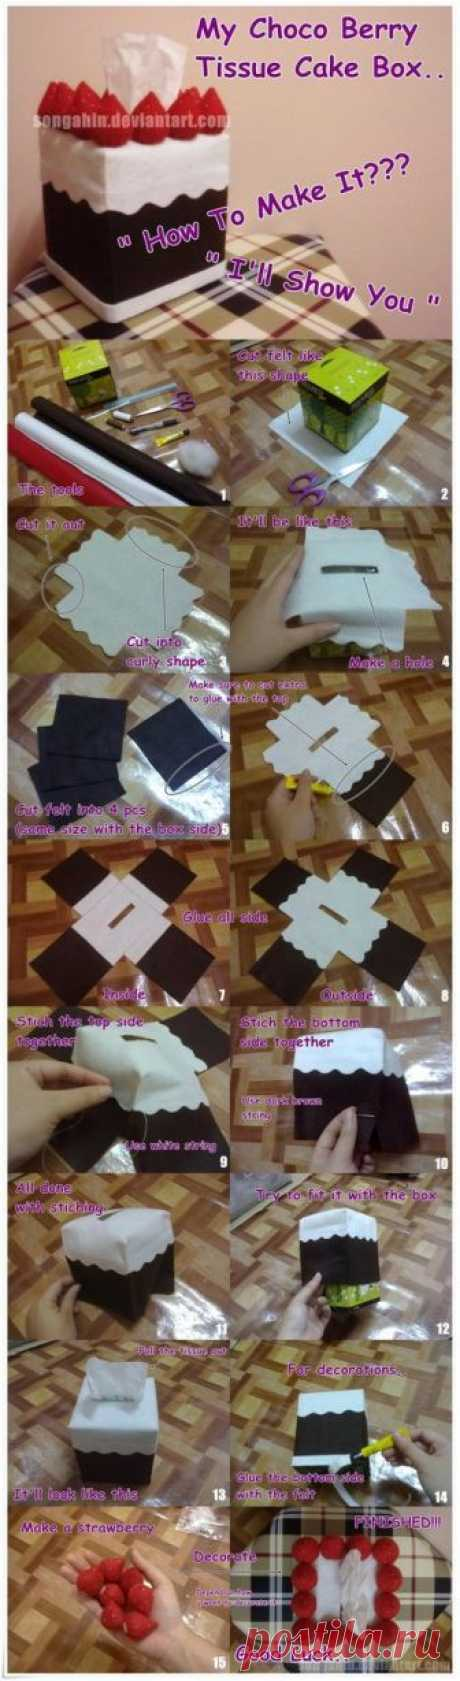 Choco Berry Tissue Bx Tutorial For strawberry tutorial --->[link] *sory for my broken english...